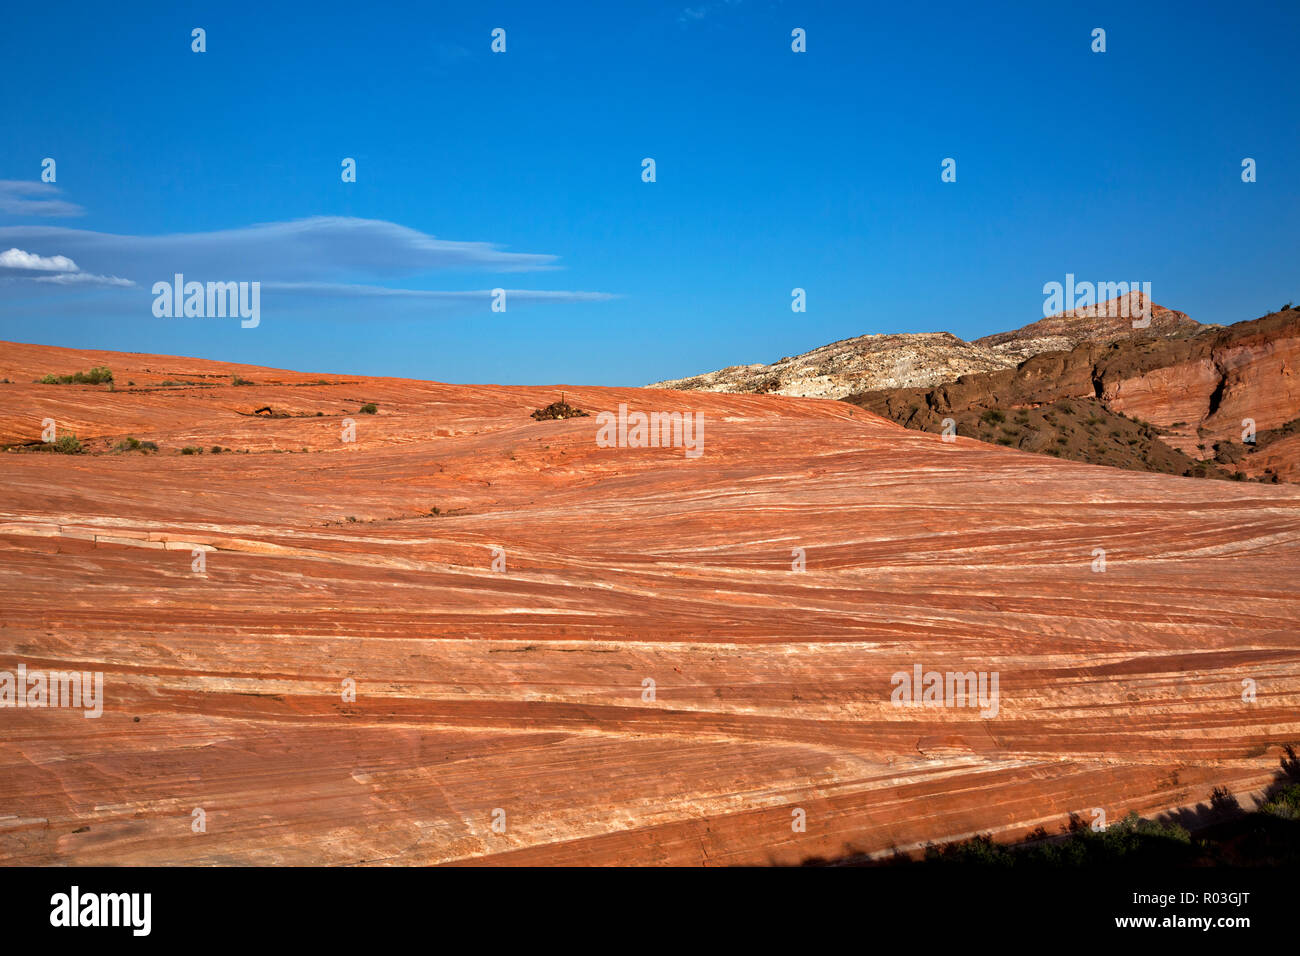 NV00069-00...NEVADA - Contrasting layers of sandstone along the cairn marked trail near The Fire Wave  in the Valley of Fire State Park. - Stock Image